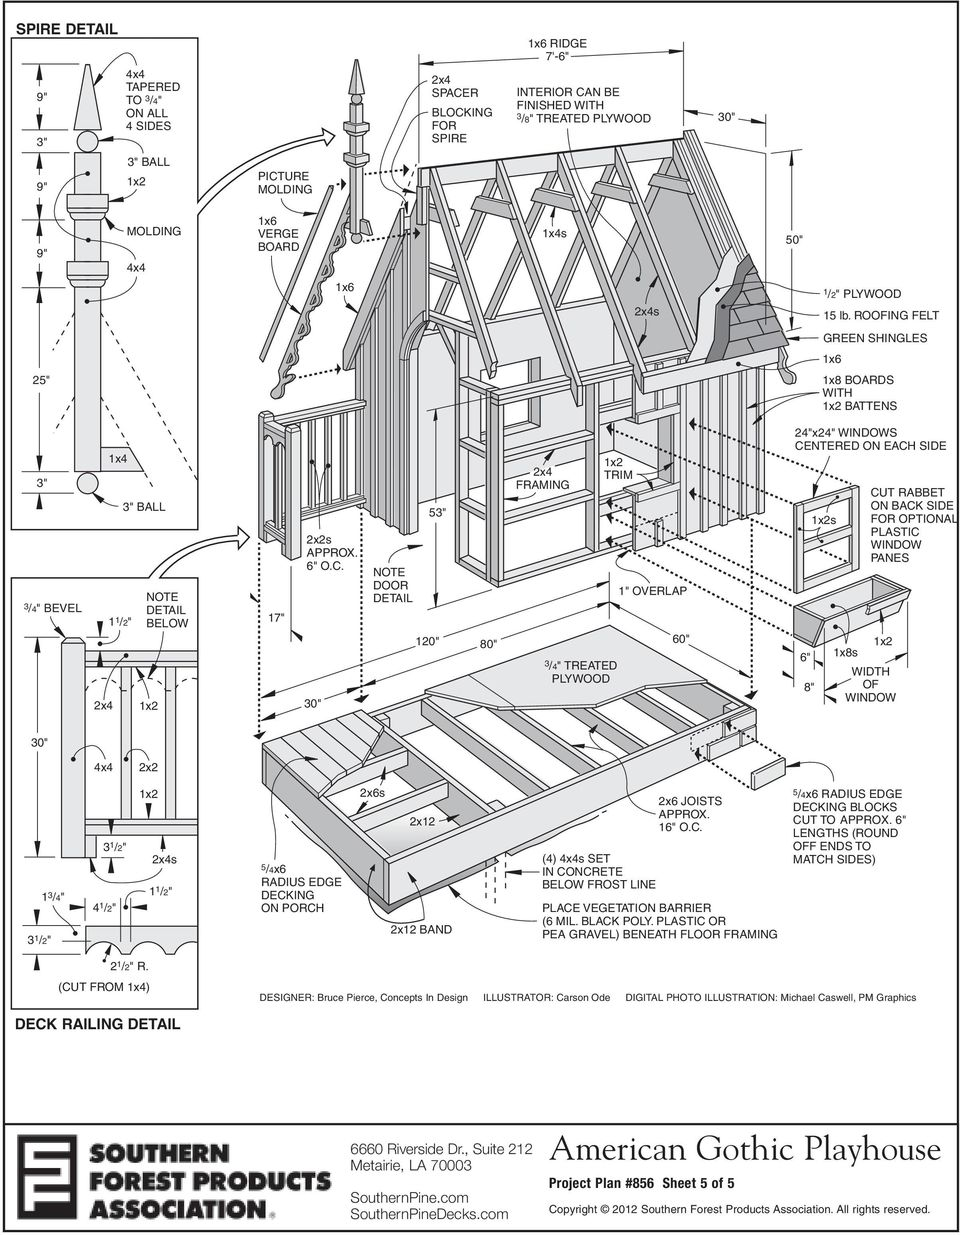 "NOTE DOOR DETAIL 53"" 120"" 80"" FRAMING 3 /4"" TREATED PLYWOOD TRIM 1"" OVERLAP 60"" 24""x24"" WINDOWS CENTERED ON EACH SIDE 6"" 1x8s 8"" s CUT RABBET ON BACK SIDE FOR OPTIONAL PLASTIC WINDOW PANES WIDTH OF"